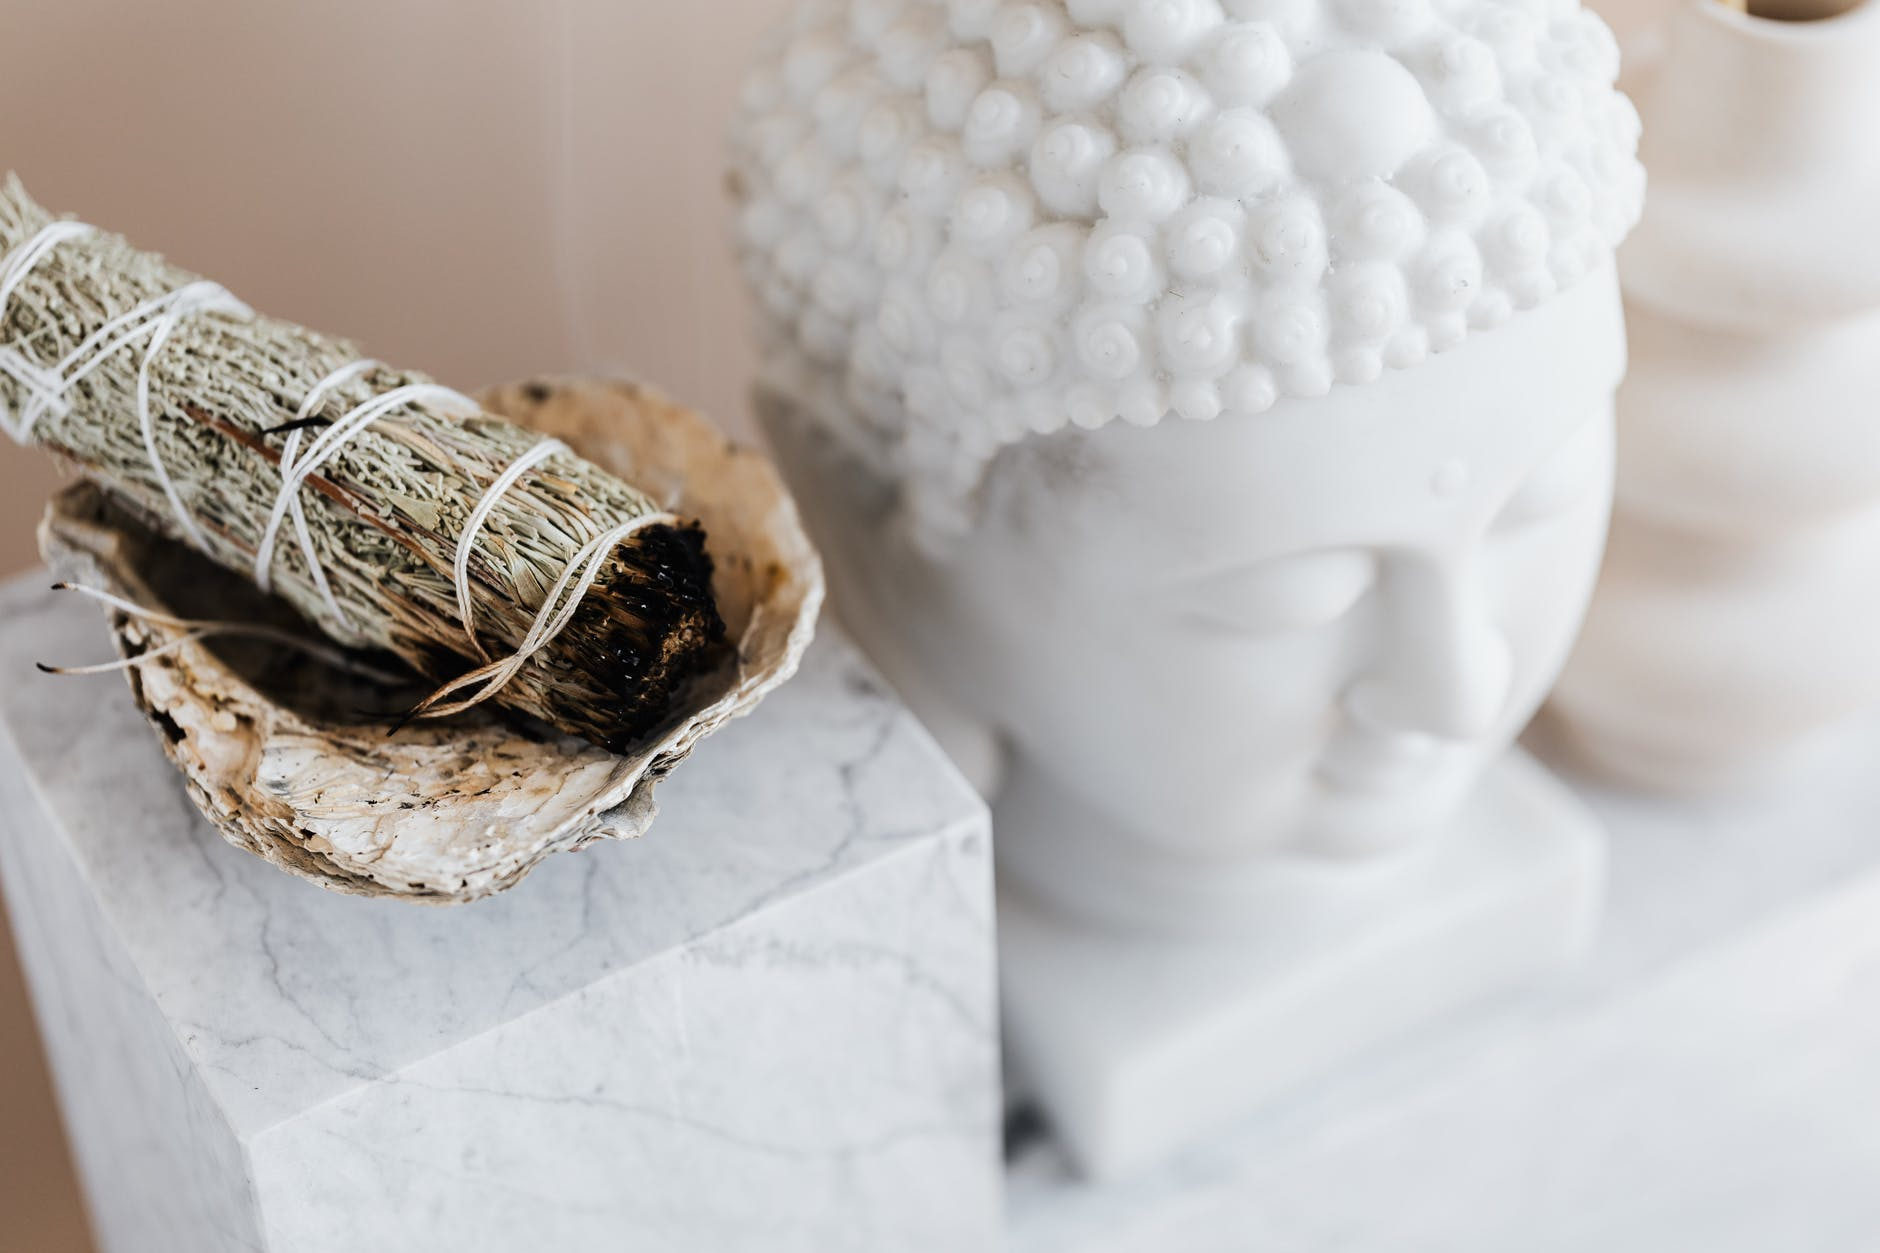 sage smudge stick in bowl on marble shelf near buddha head. figures and scents both helpful to set the tone for a meditation practice